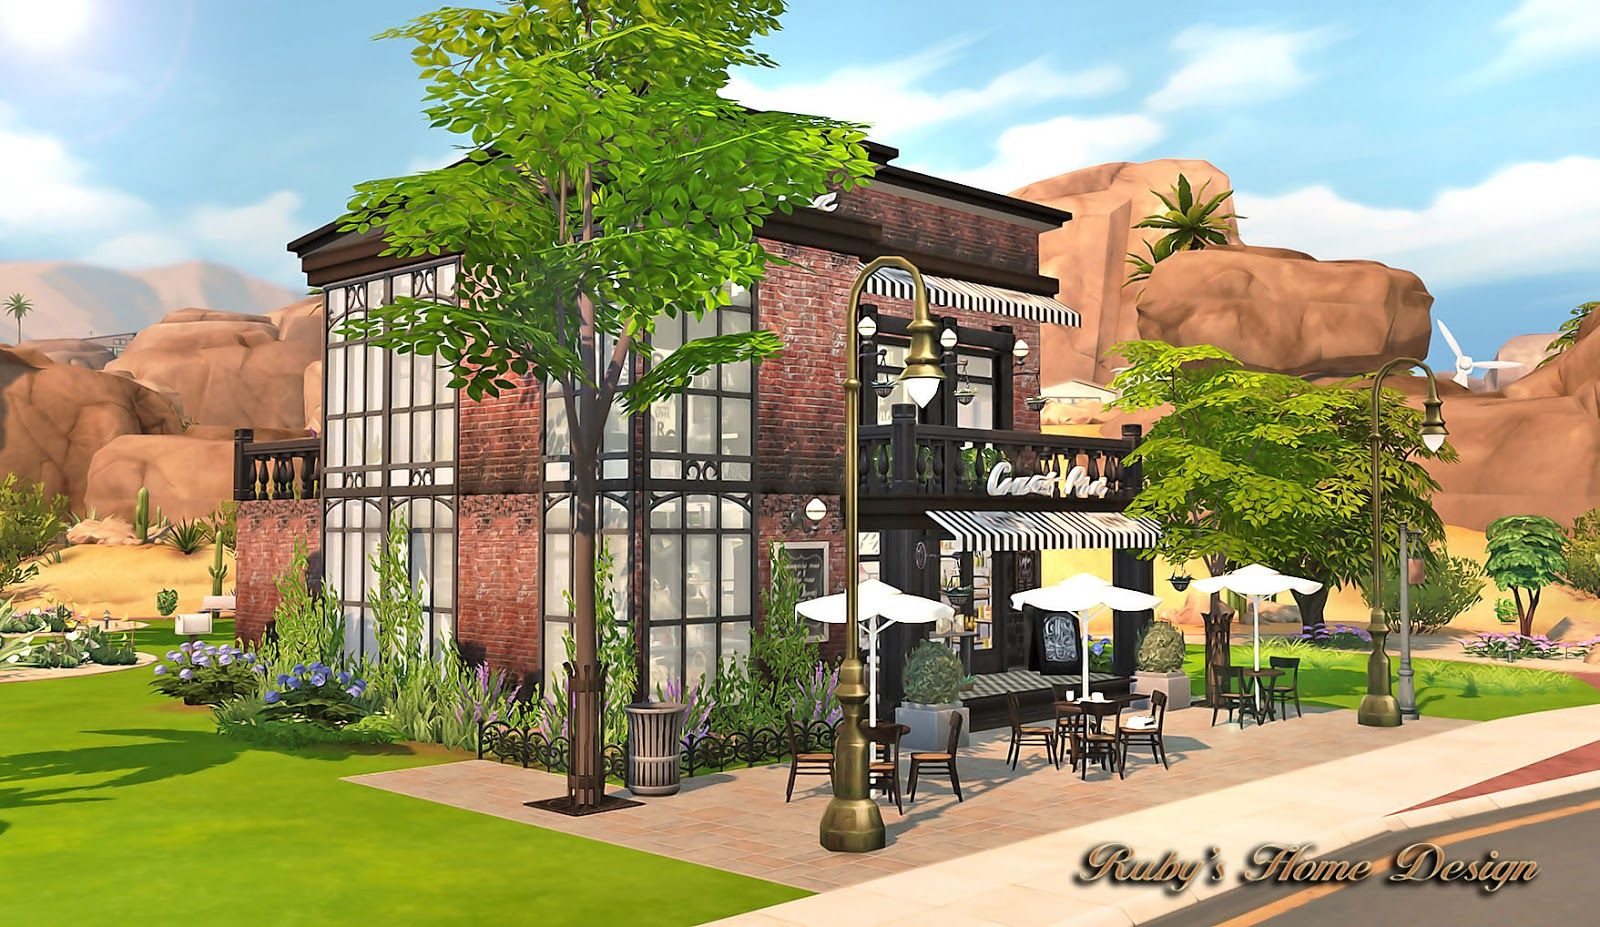 Sims4 deli amp grocery store ruby s home design - Sims4 Deli Grocery Store Ruby S Home Design The Sims Pinterest Grocery Store Home Design And Home